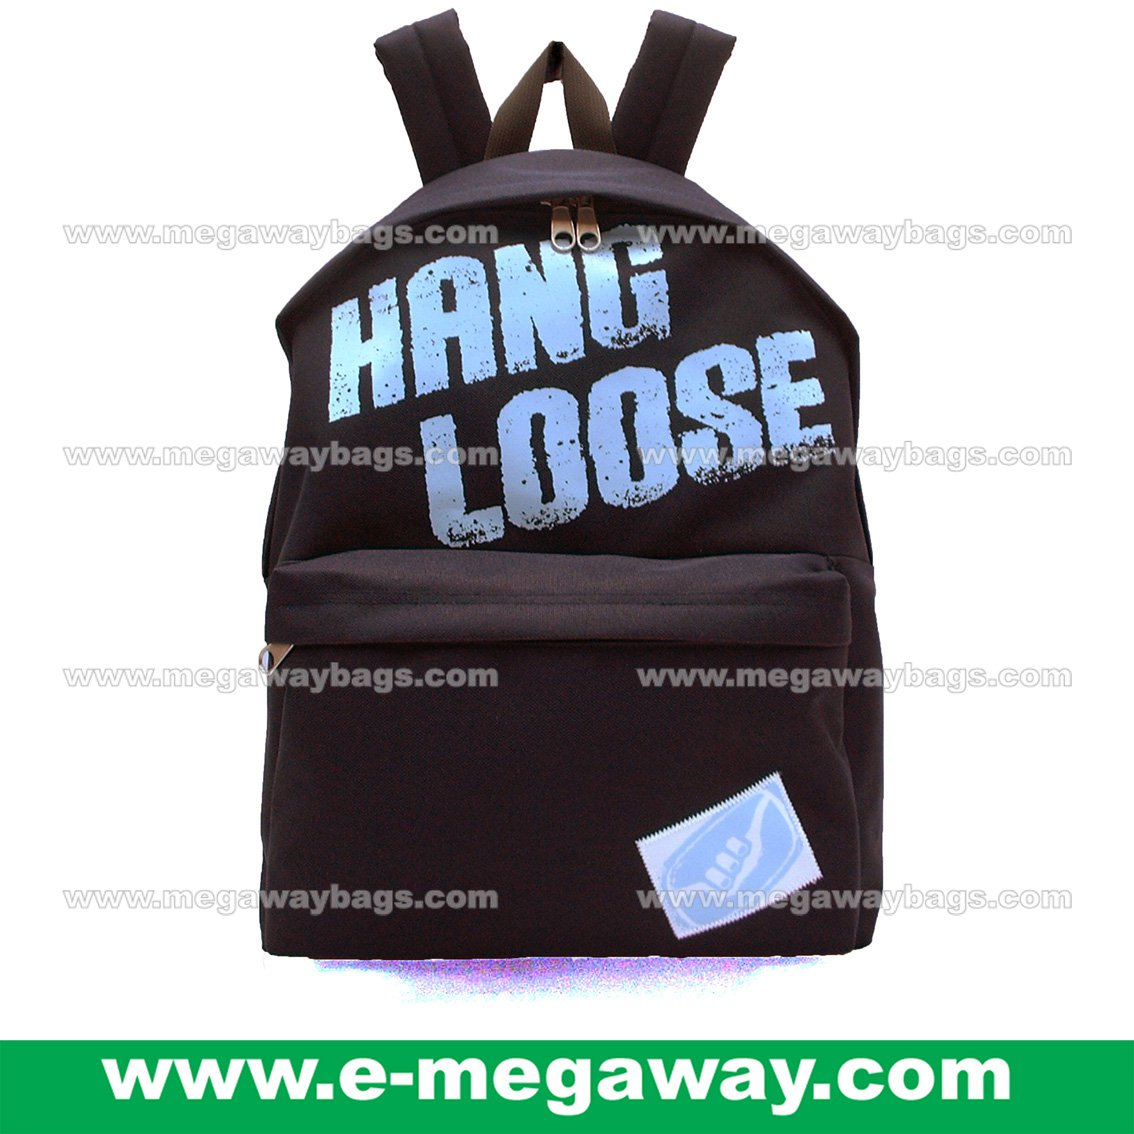 Hang Loose Backpack Nylon Backpack Rucksack Day Pack Sports Outdoor MegawayBags #CC- 0982B